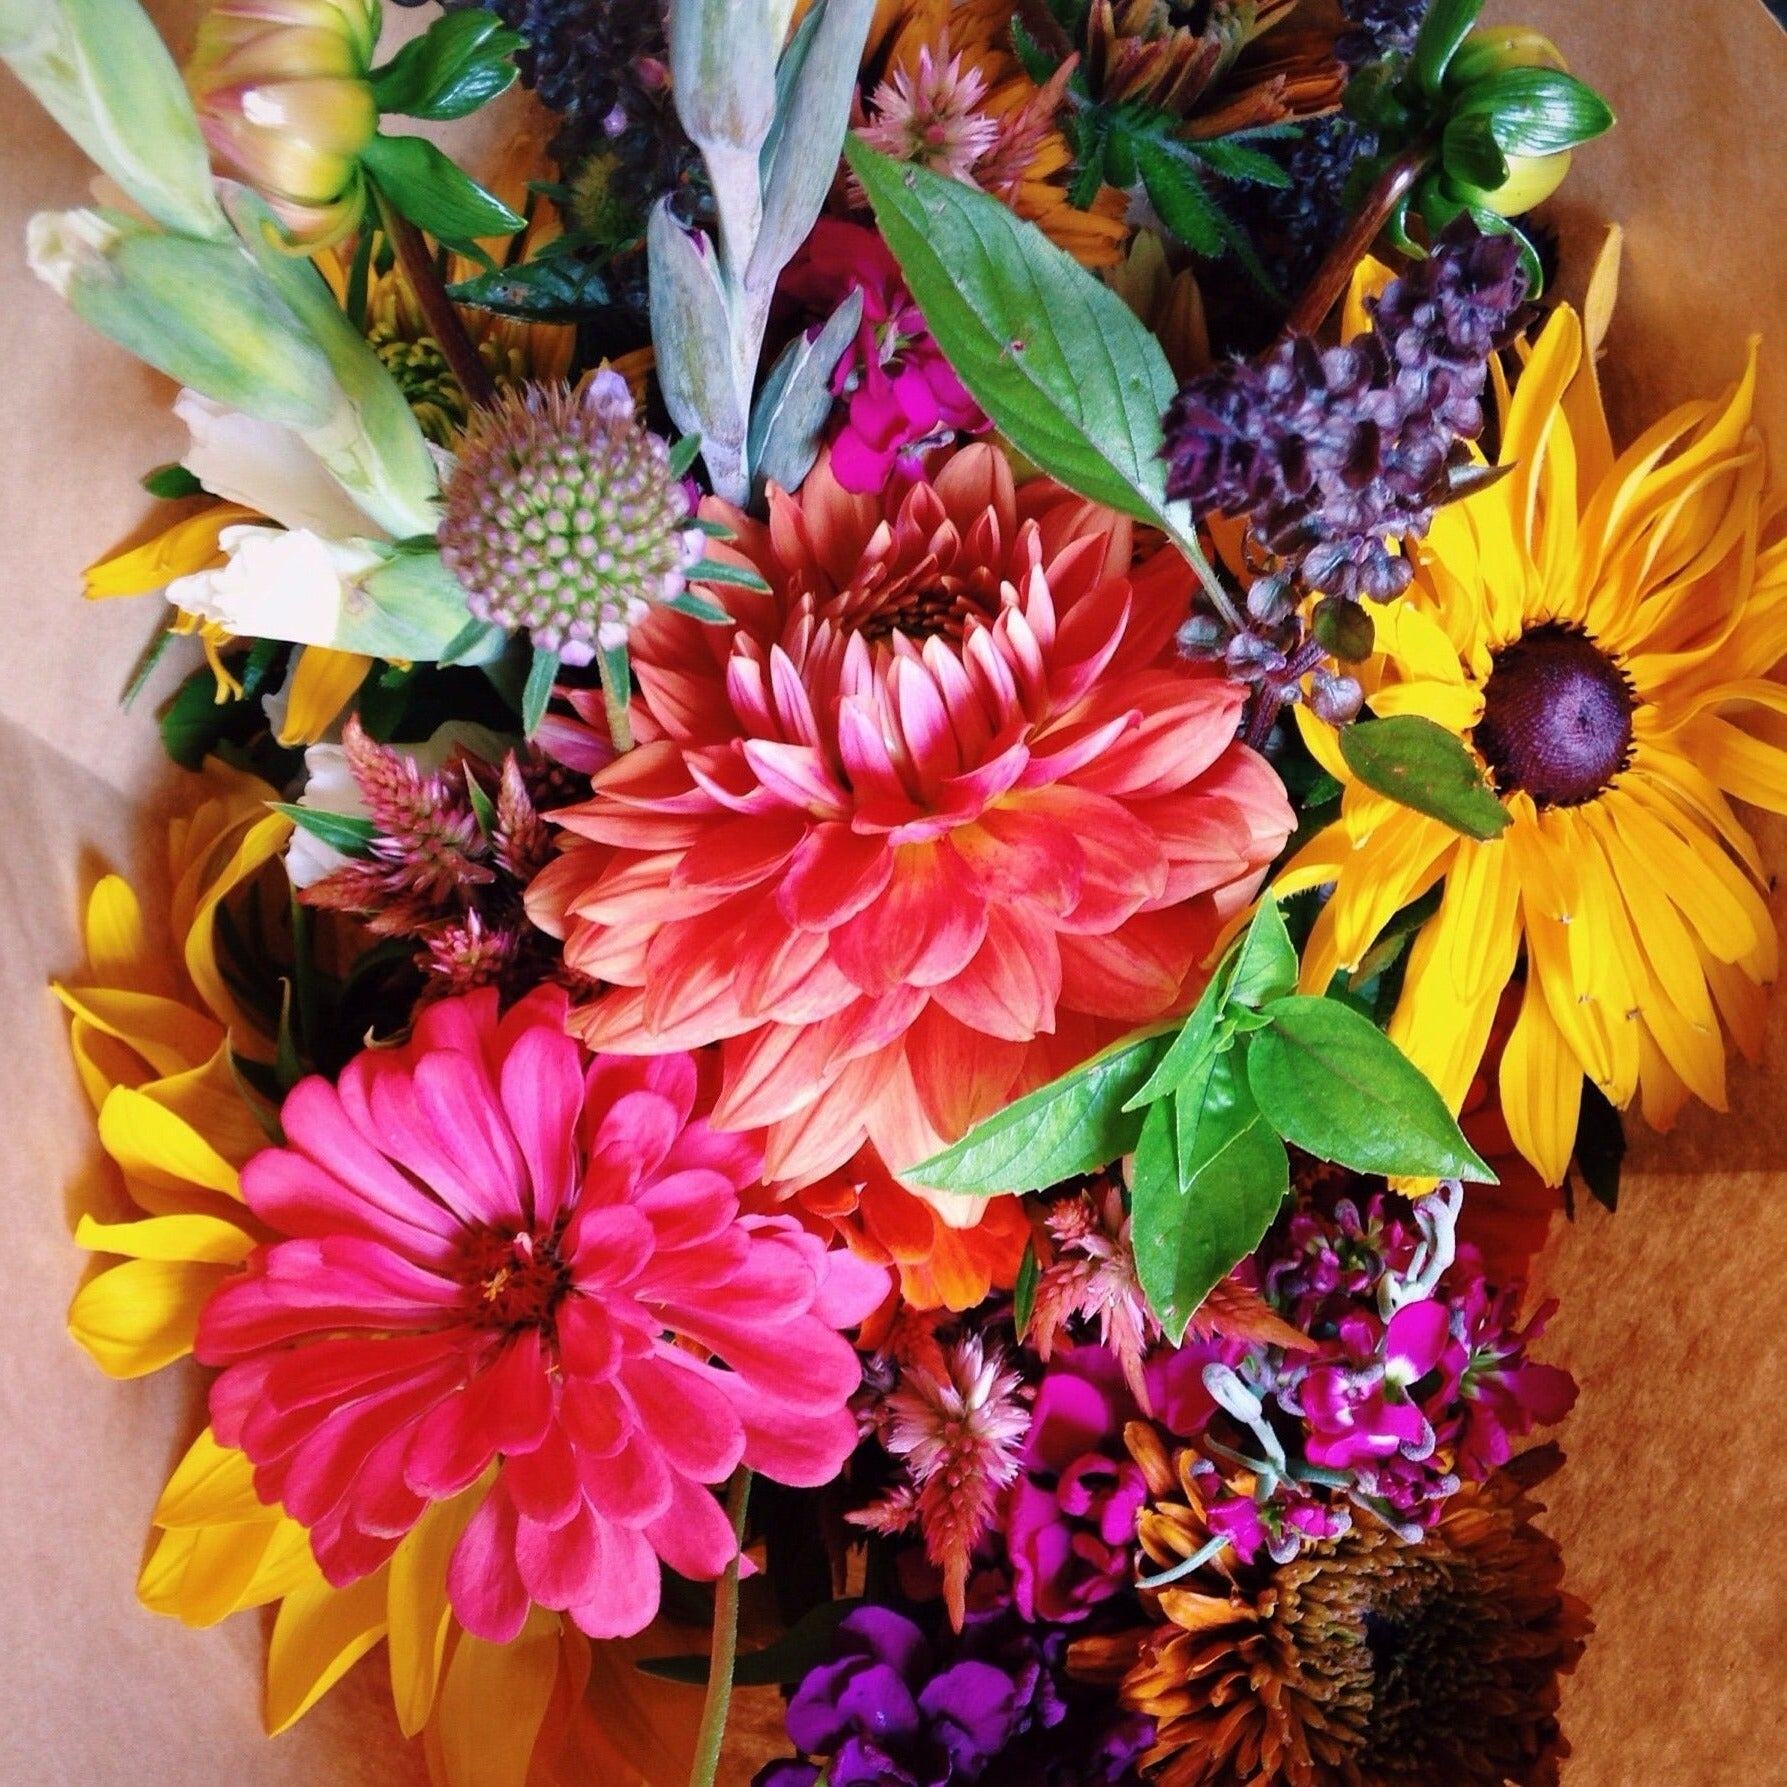 Colorful mixed bouquet including dahlias, zinnias and rudbeckia